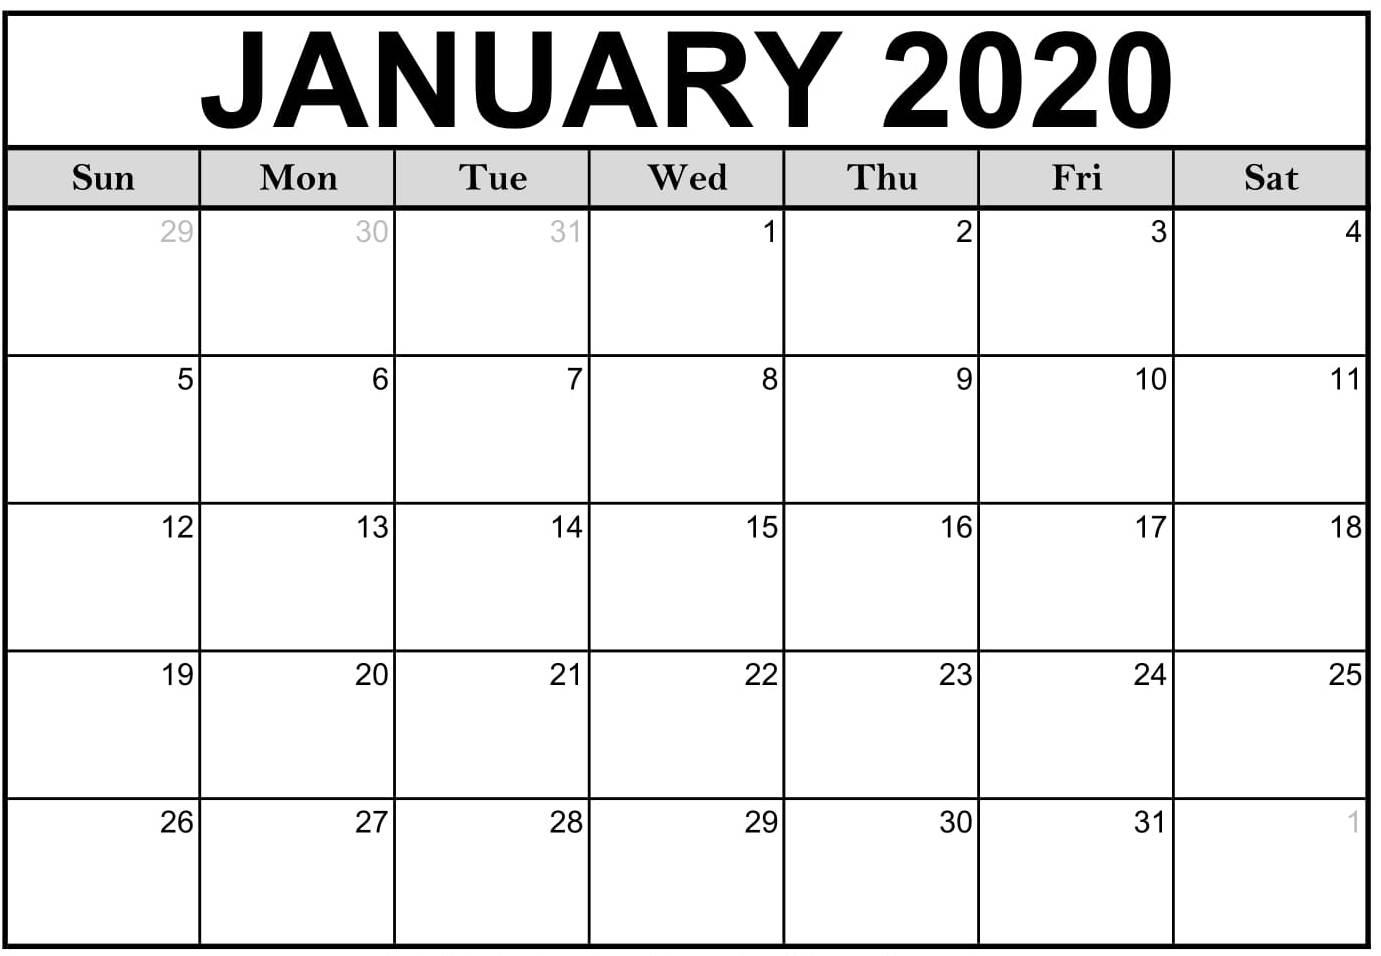 January 2020 Calendar Excel Template With Holidays - Set